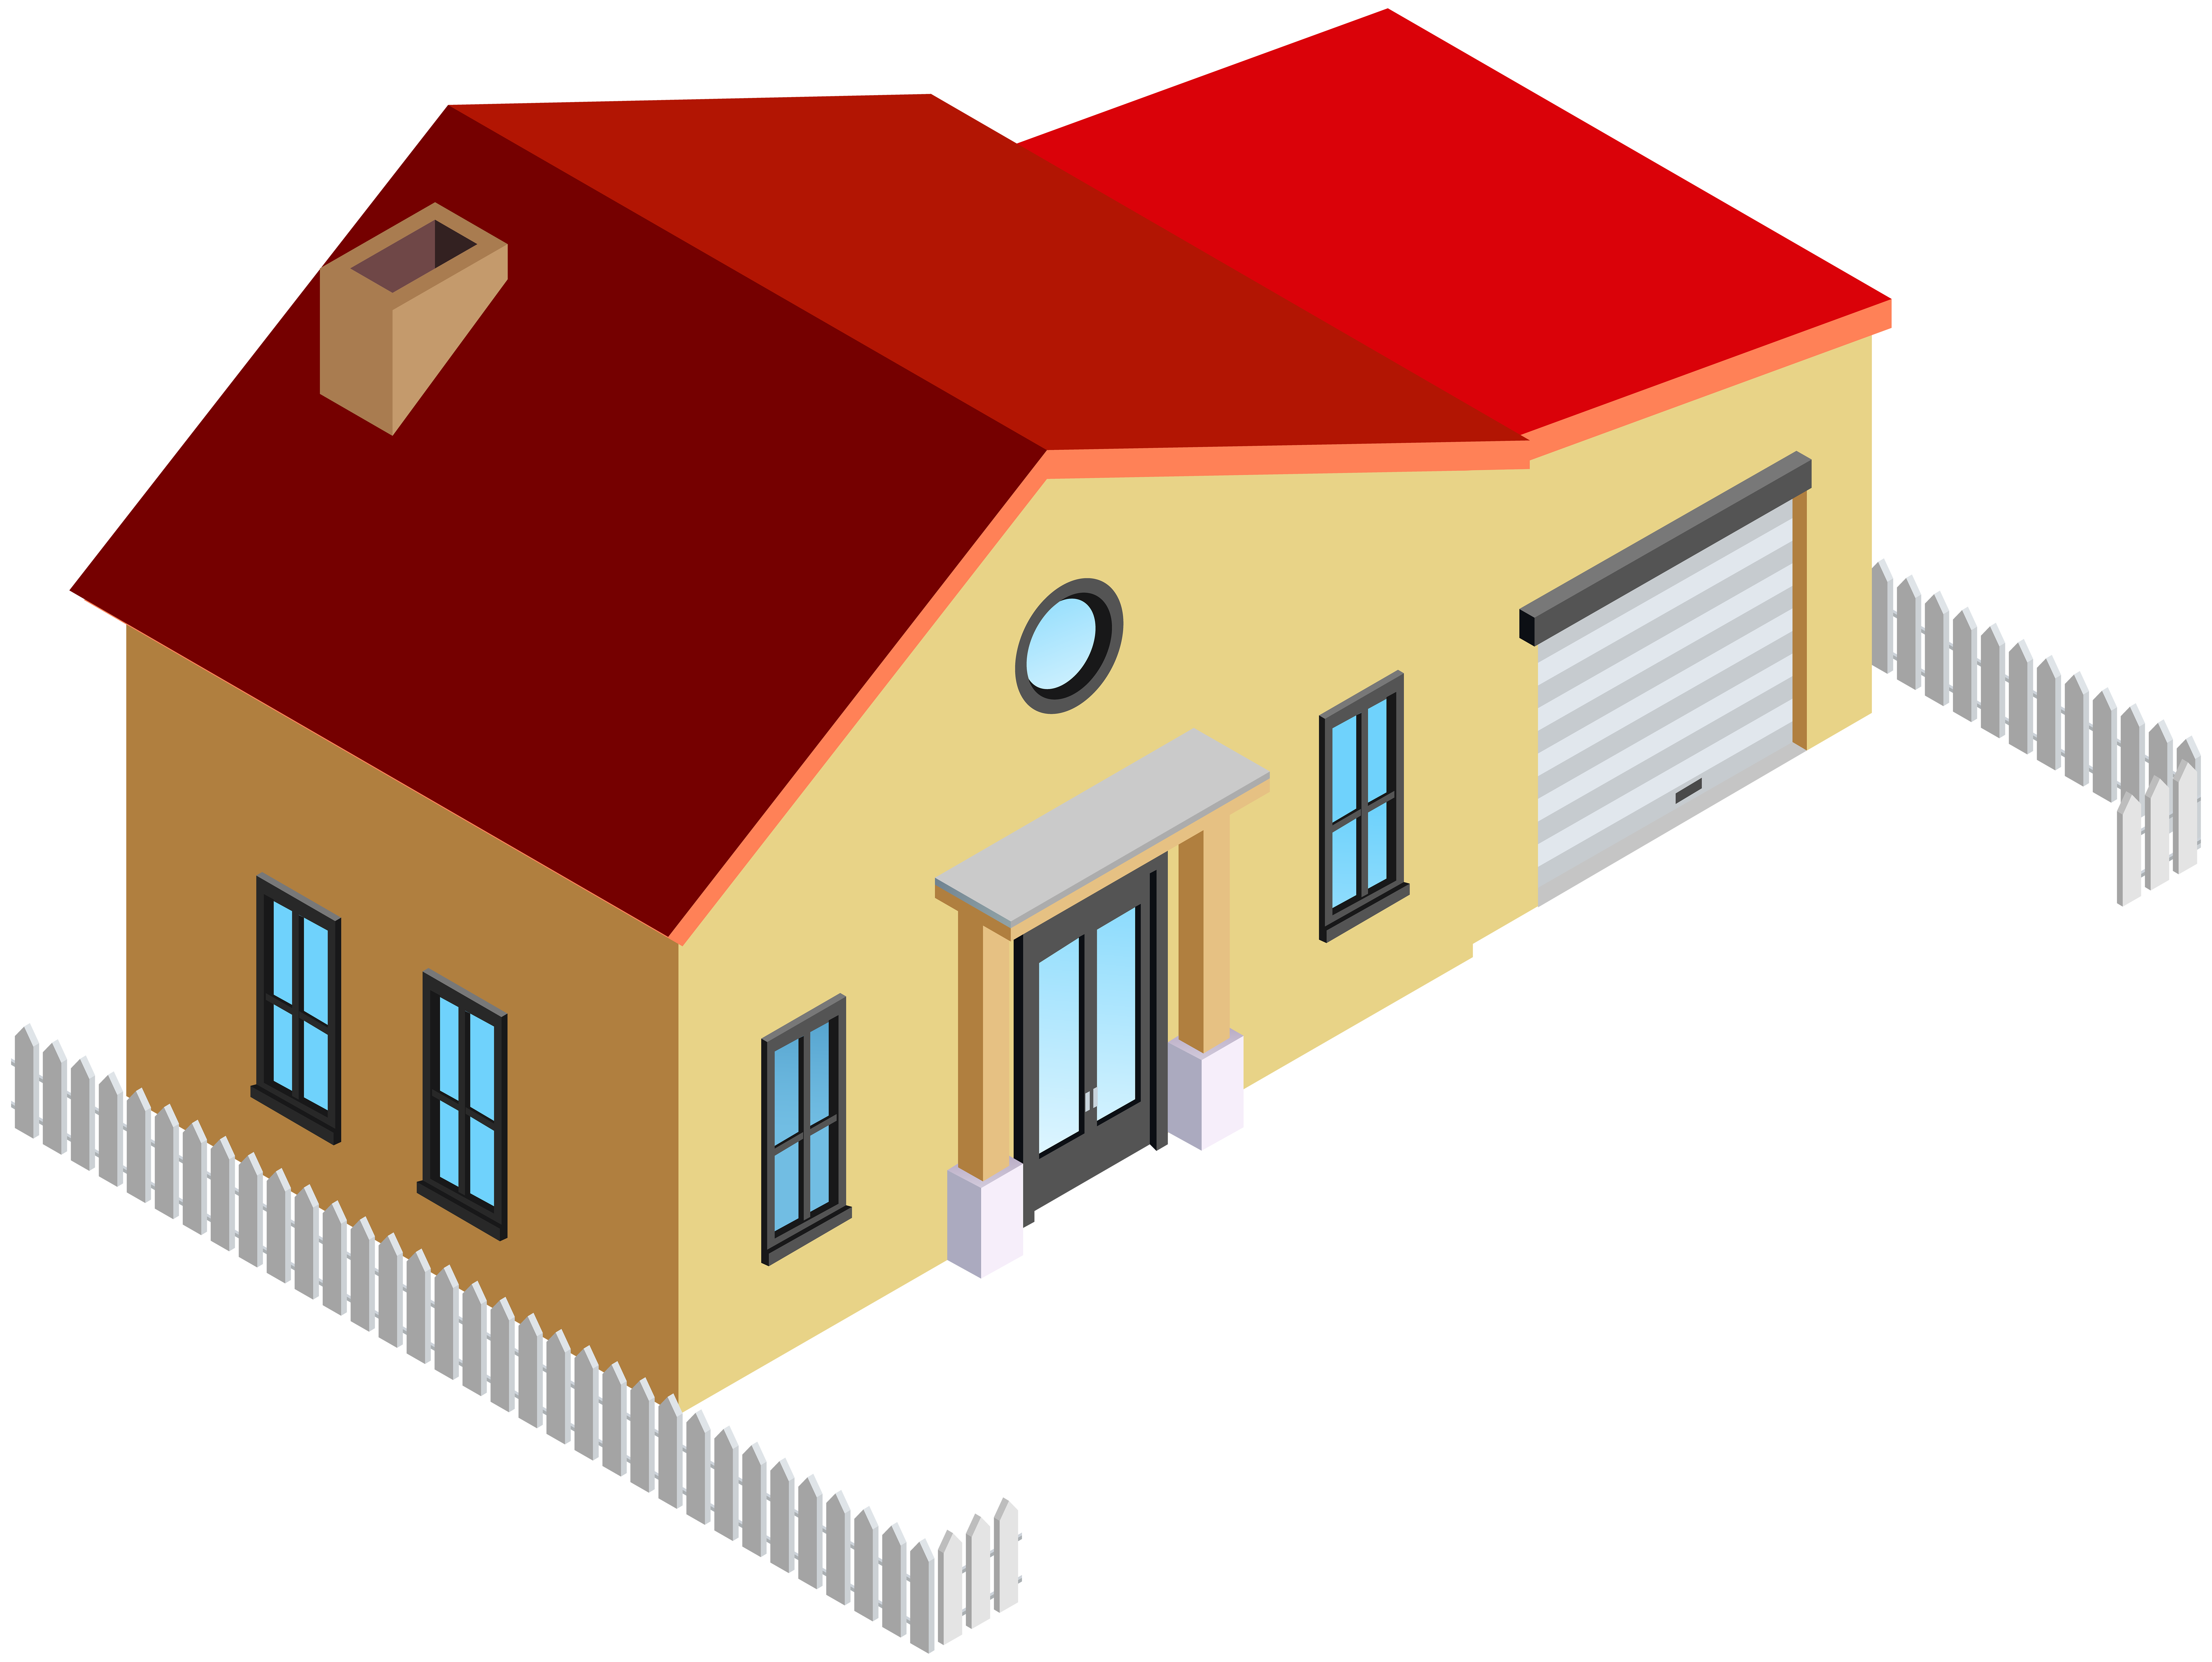 8000x6010 House With Fence Png Clip Art